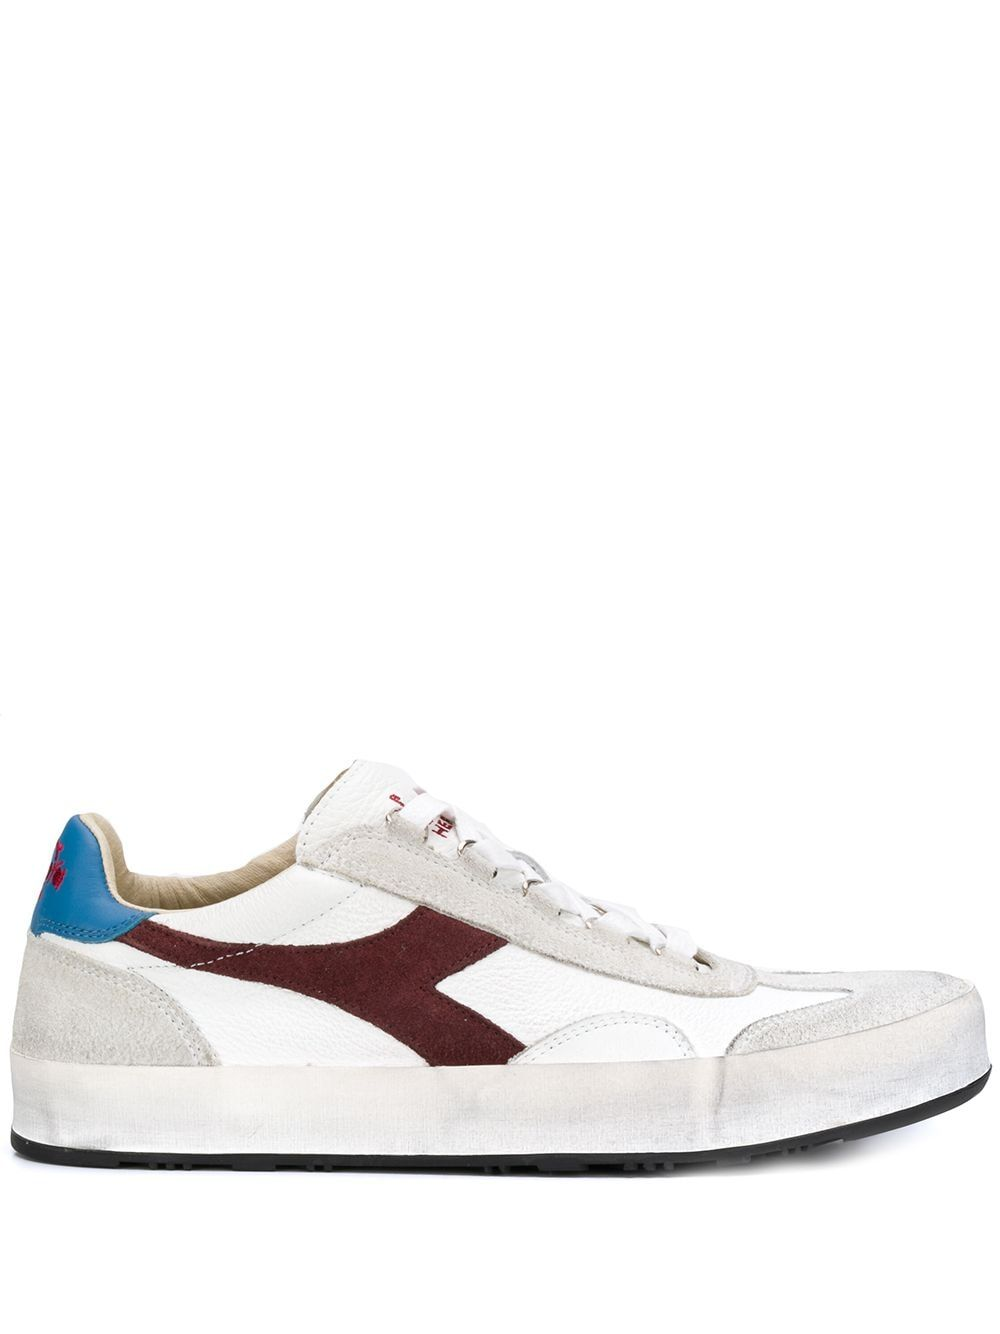 12 Best Shoes images | Shoes, Diadora sneakers, Sneakers